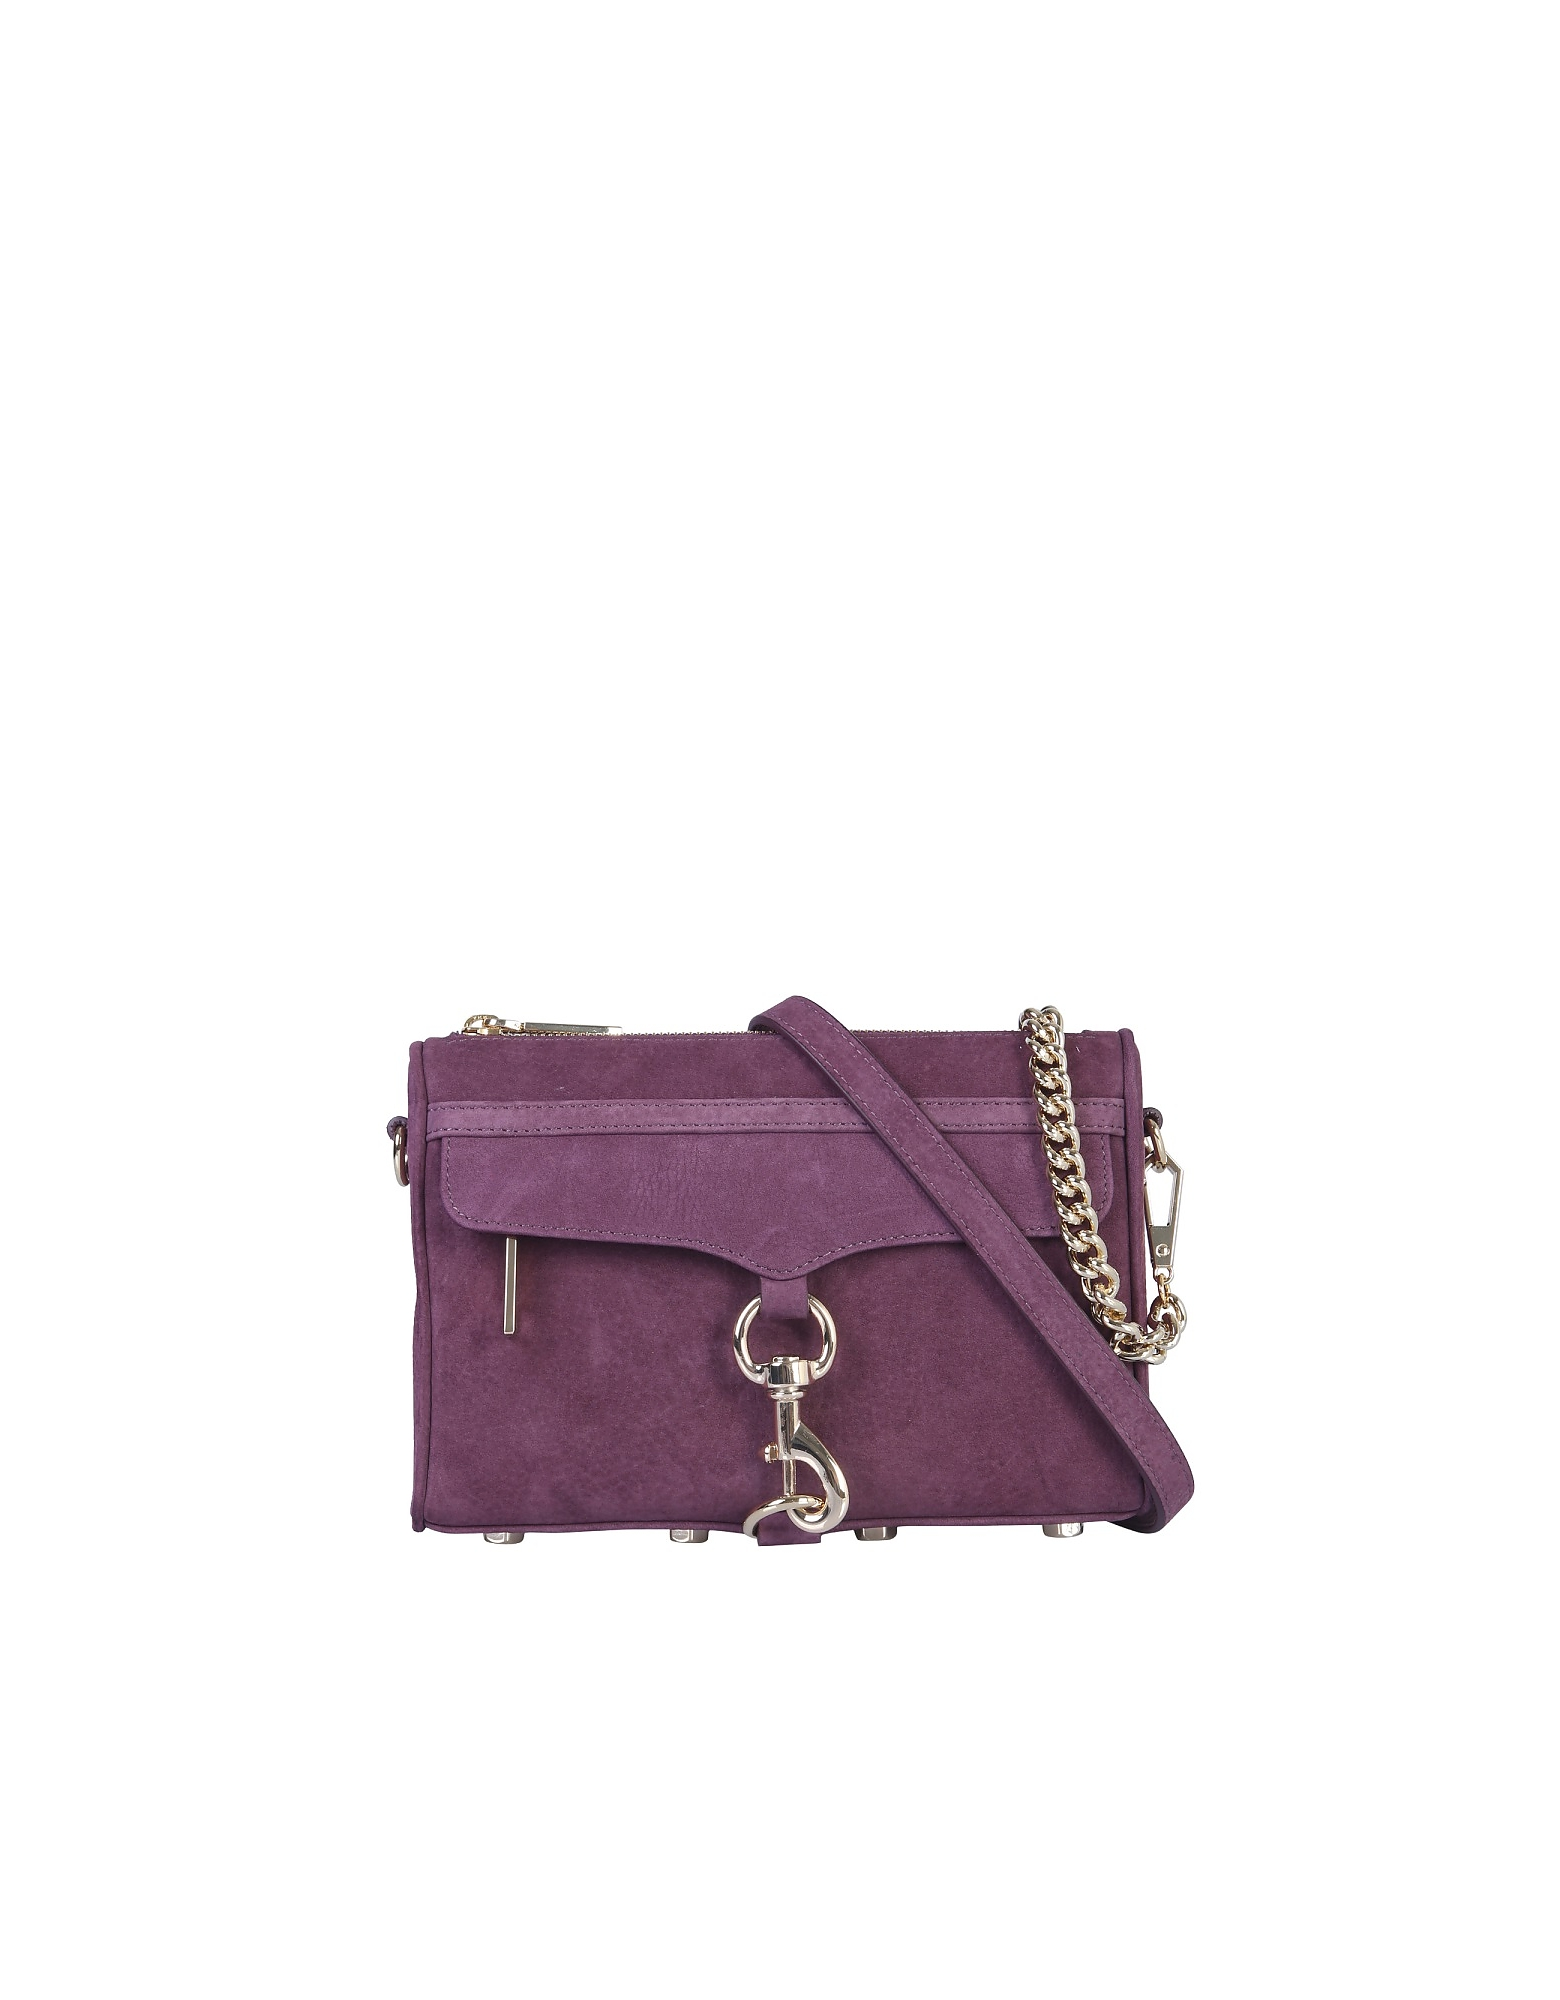 Rebecca Minkoff Designer Handbags, Mini Mac Bag